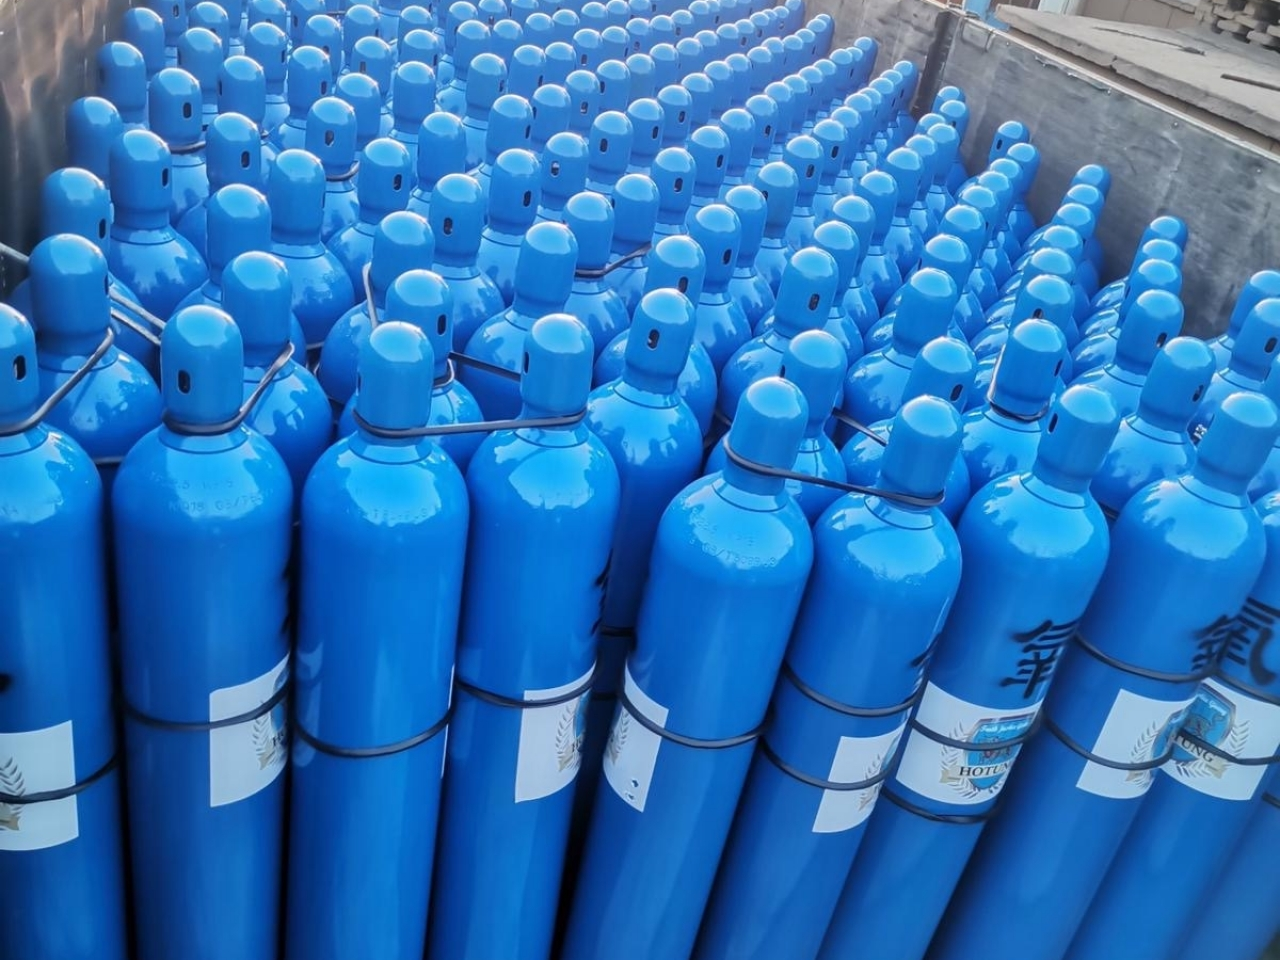 Oxygen cylinders are loaded on to a truck at Linyi in Shandong province, ahead of a 3,000km trip to the border with Nepal. Photo: Submitted